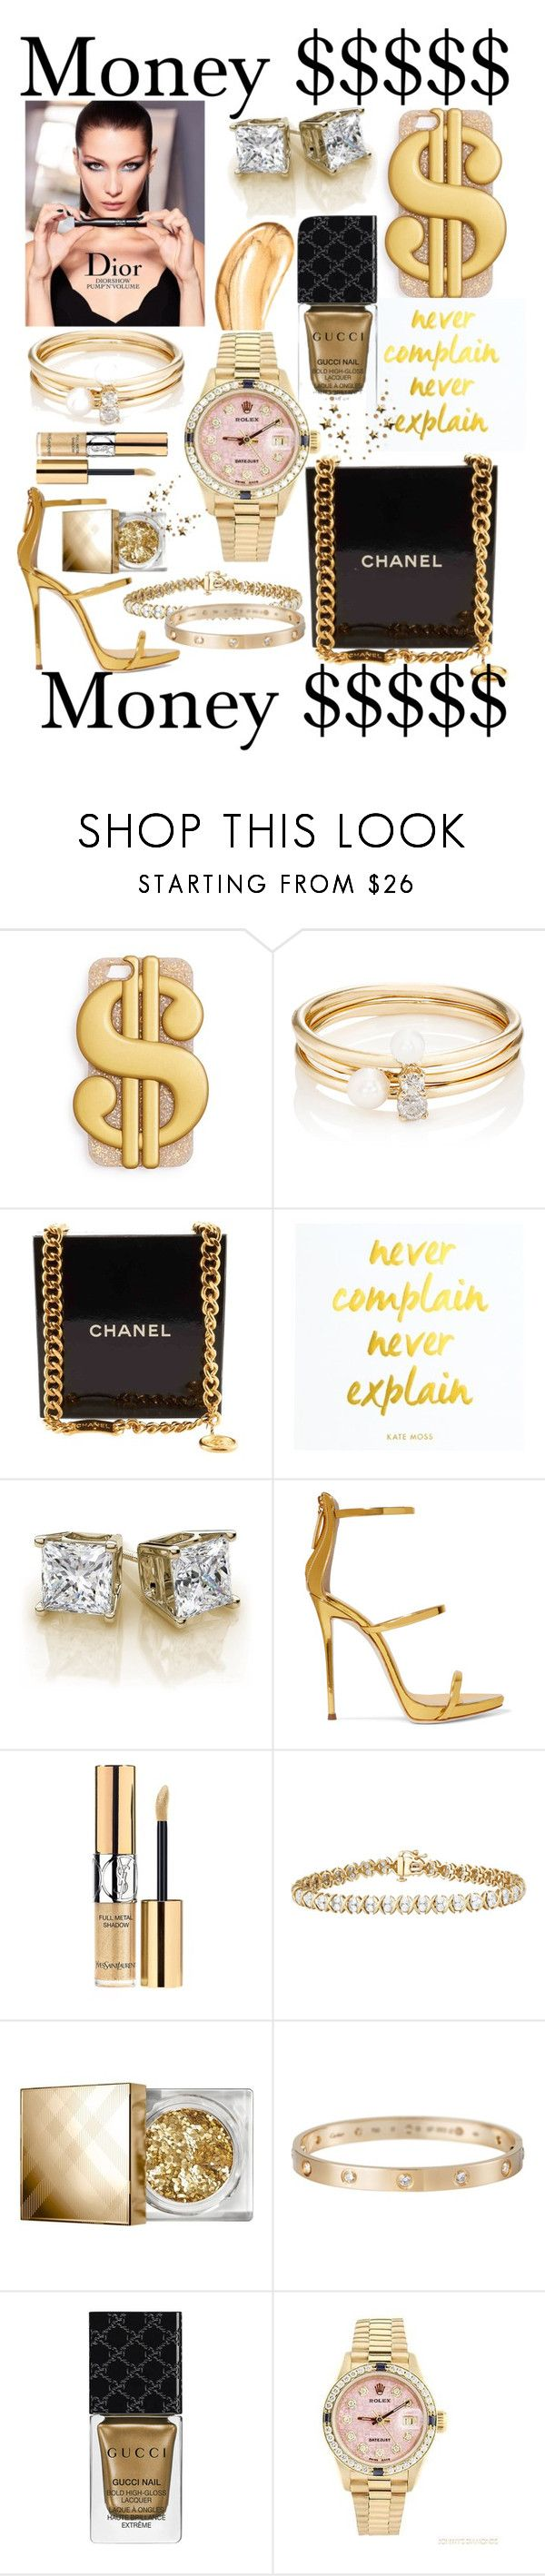 """""""Money $$$$$"""" by mandimwpink ❤ liked on Polyvore featuring ban.do, Loren Stewart, Chanel, Giuseppe Zanotti, Yves Saint Laurent, Burberry, Cartier, Gucci, Rolex and Tom Ford"""